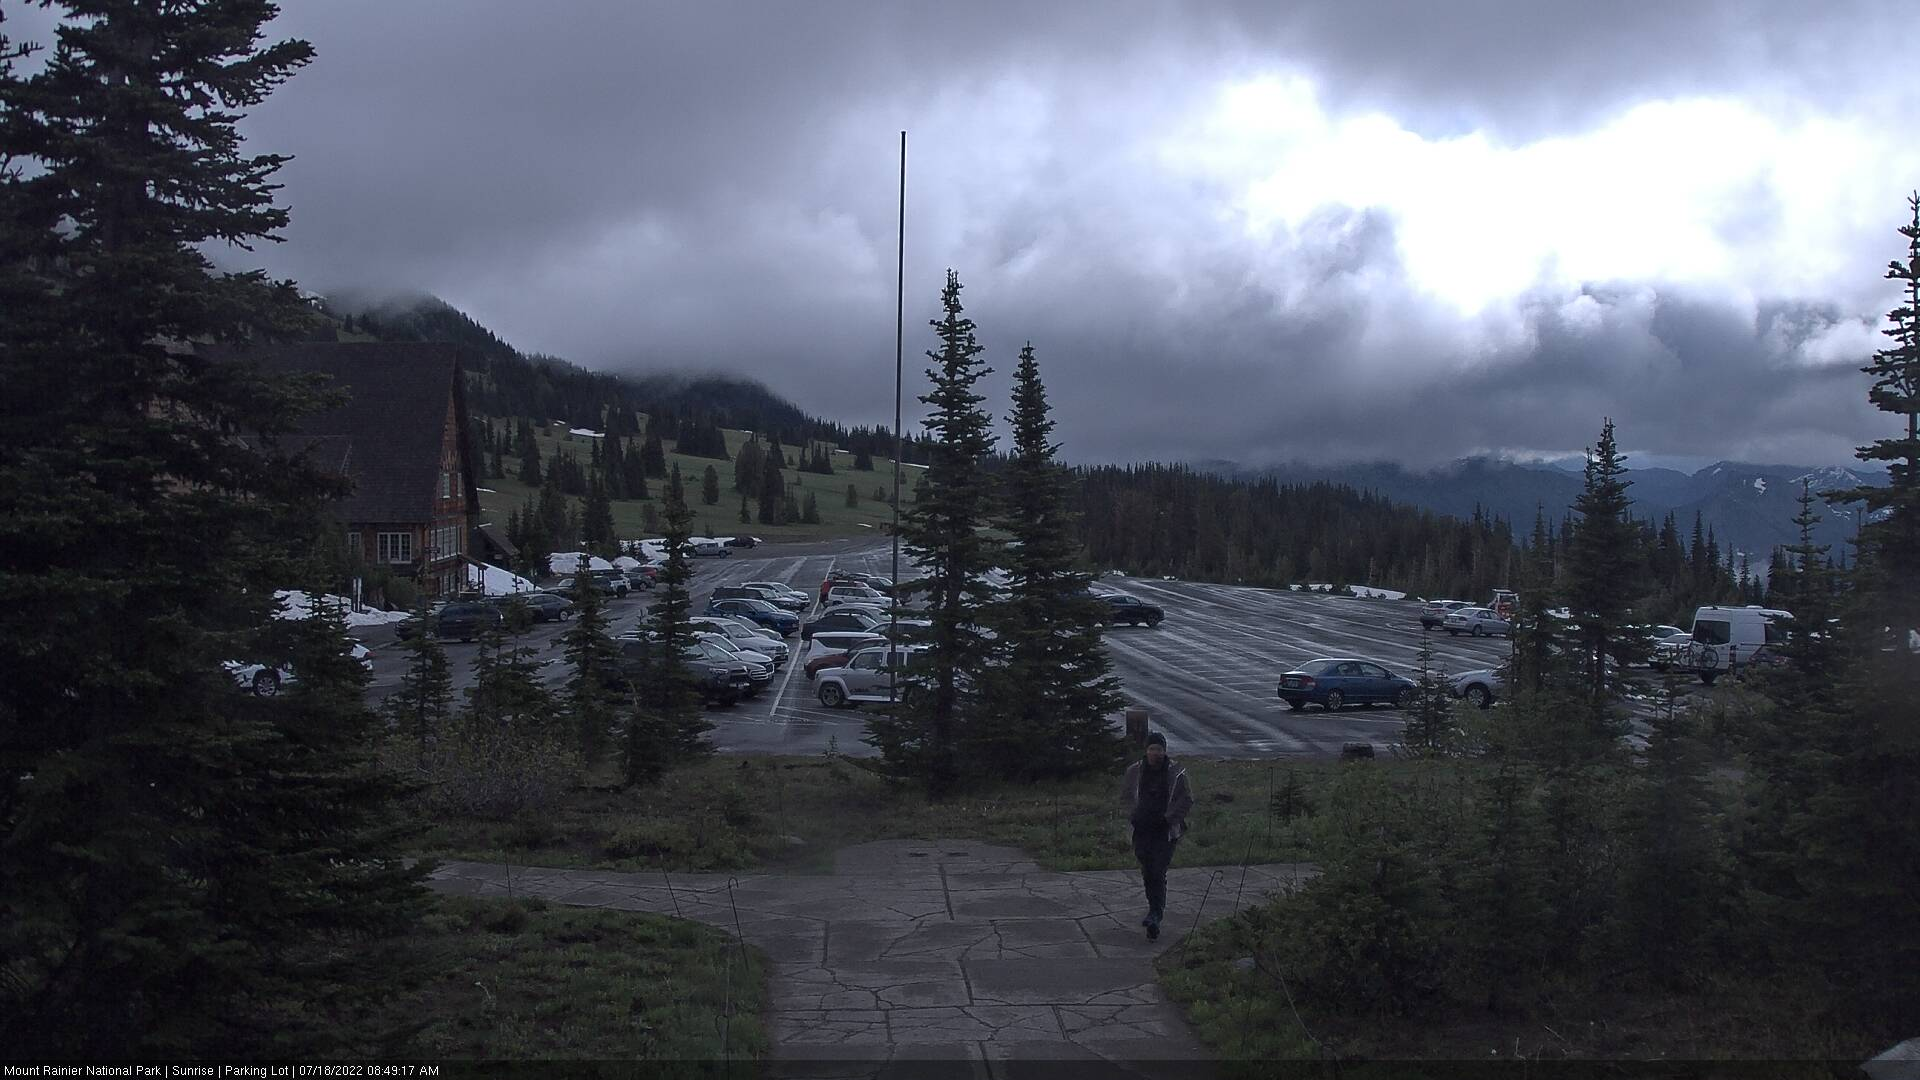 Sunrise Visitor Center on Mount Rainier